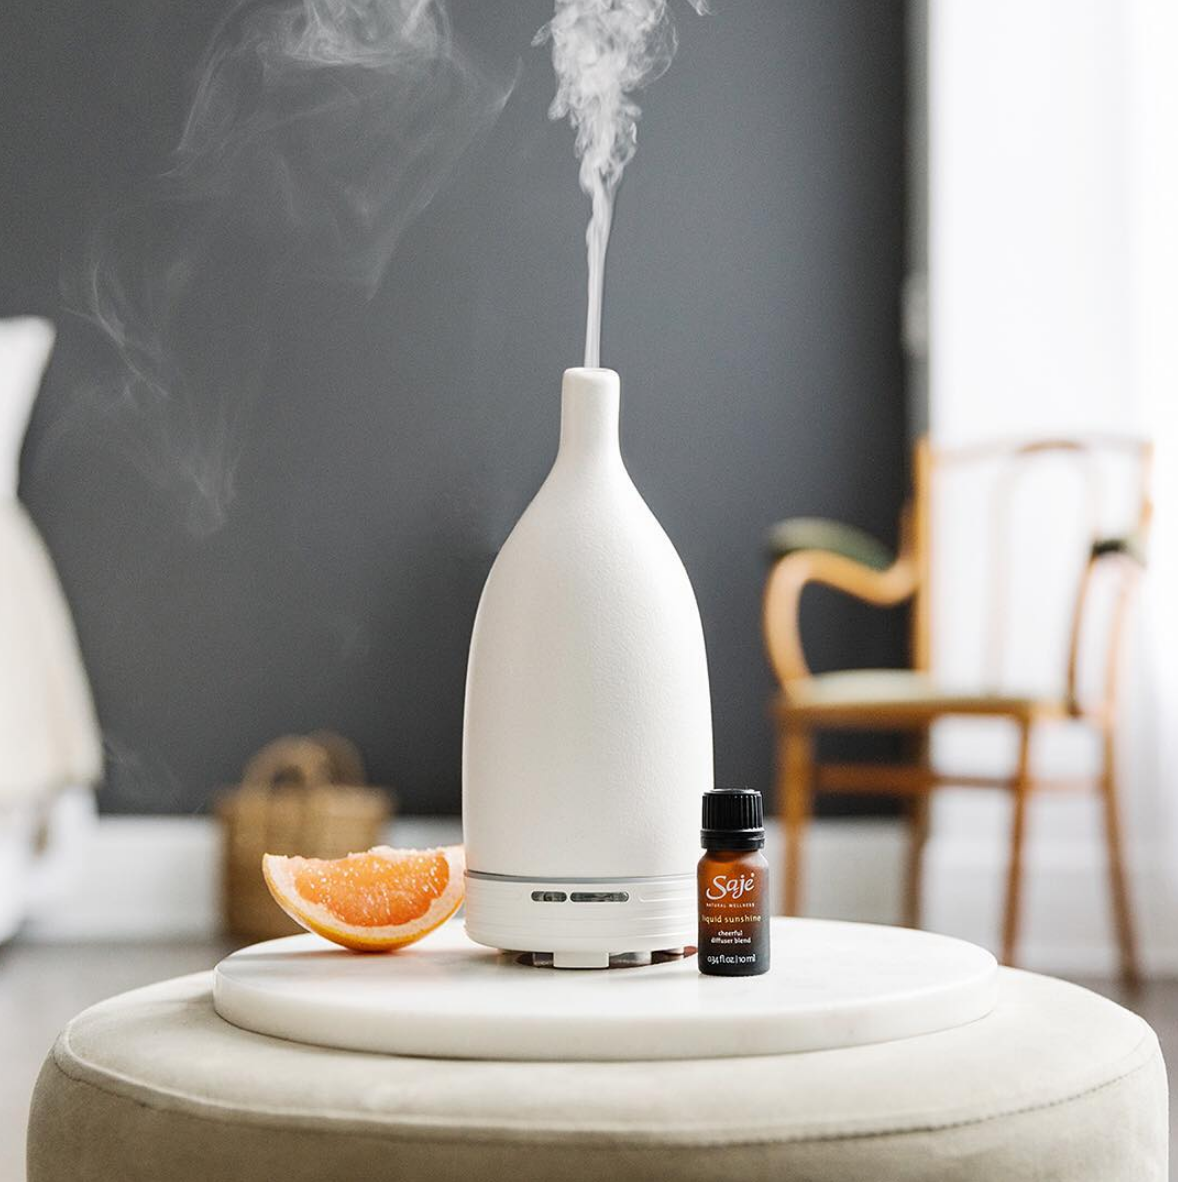 Diffuser - Diffusing kid friendly essentail oils, and even applying the oil topically on the bottoms of feet (I like to mix ours with a little lotion as well).A couple of my favourite blends, Doterra's On Guard, or Saje's Immune Antibacterial Esential Oil